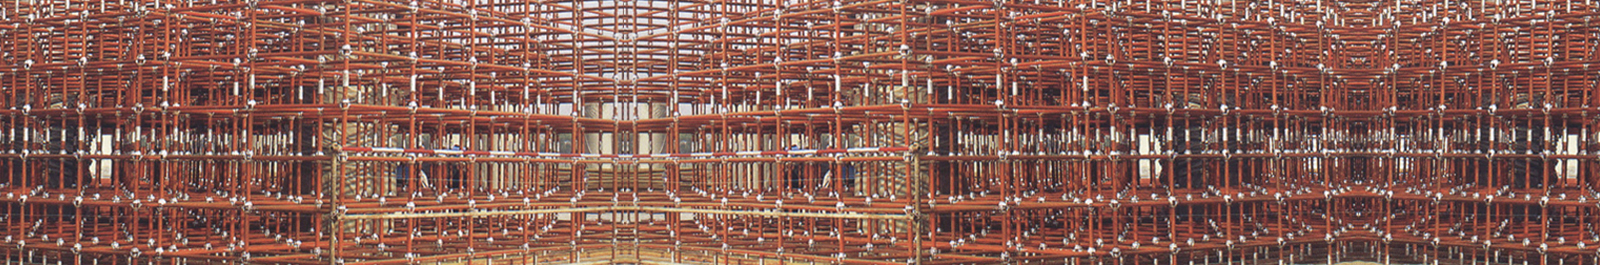 Scaffolding Products Manufacturer and Supplier in Hyderabad India | PAAM Group